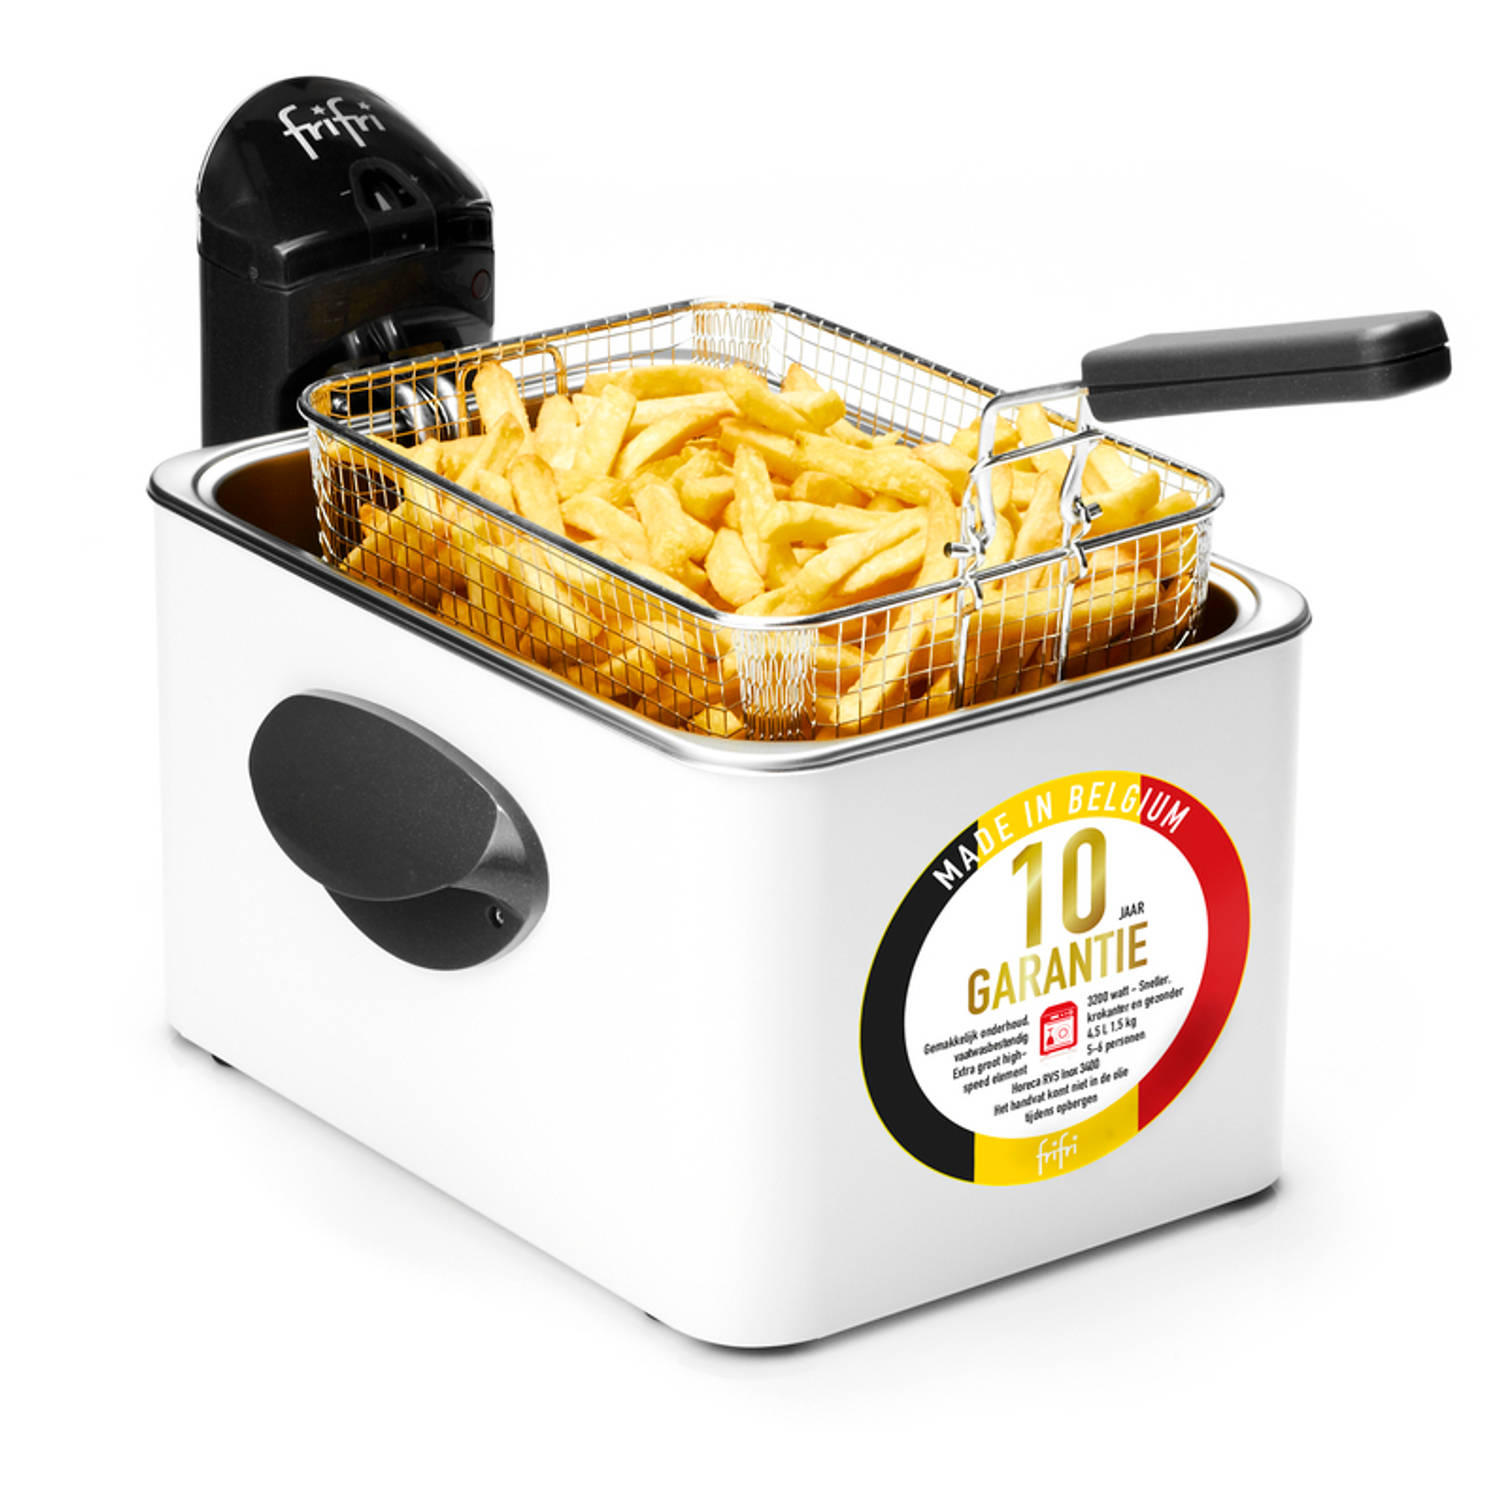 FriFri 1948B - HSCF5050 High speed classic family 3200 Watt koude zone 4,5L friteuse metal wit